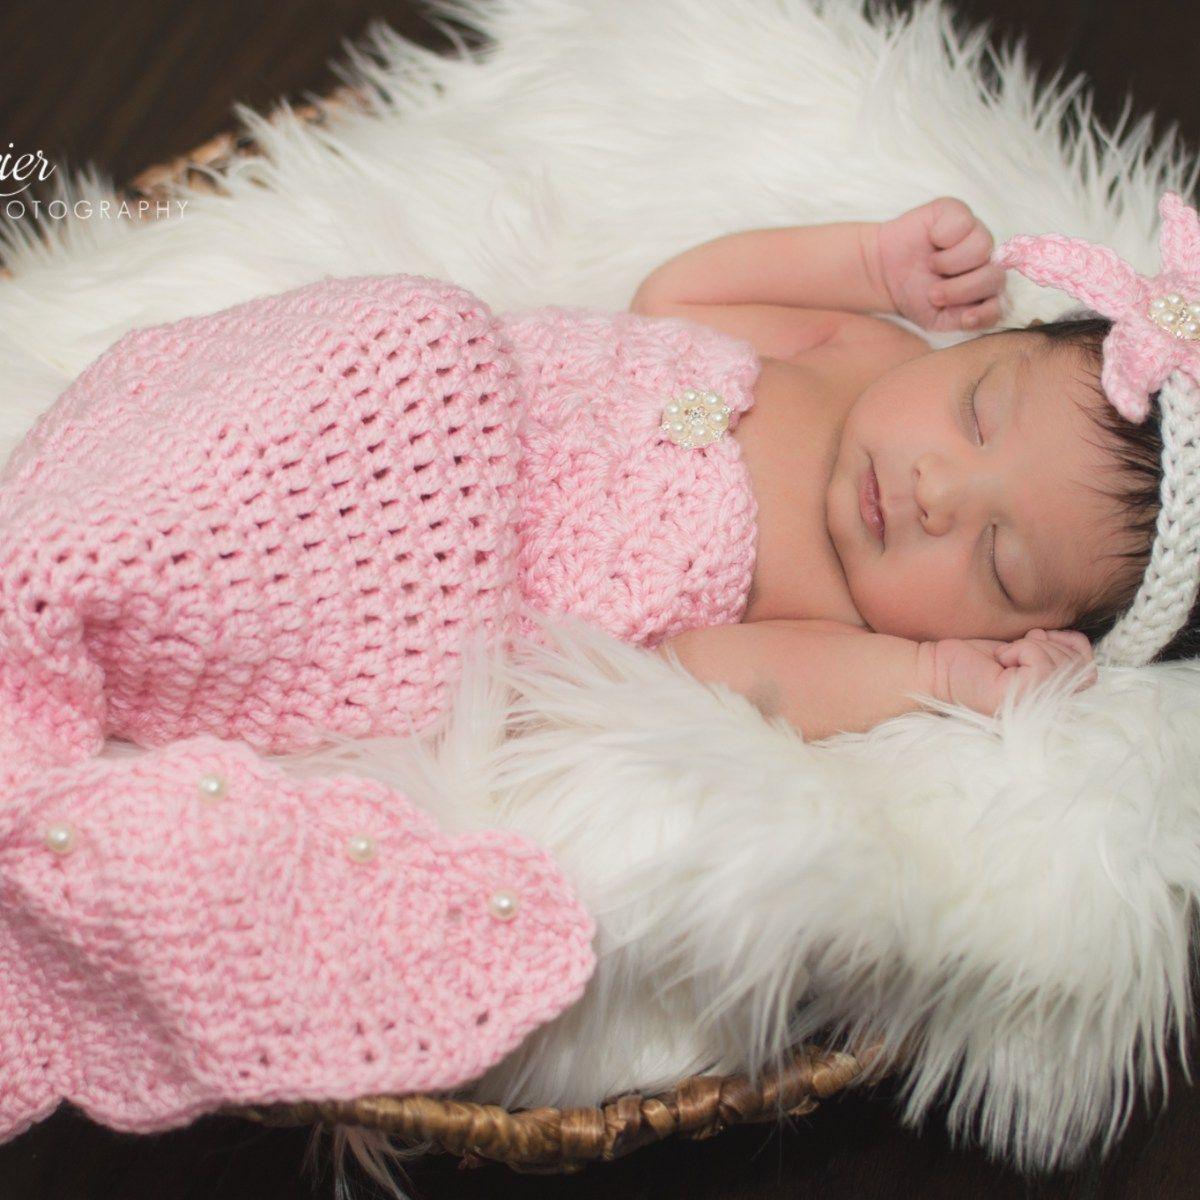 d28cb0a5b31b Crochet Newborn Mermaid Outfit With Starfish Headband Pattern By  AMKCrochet.com. Perfect Newborn Baby Girl Photo Prop!